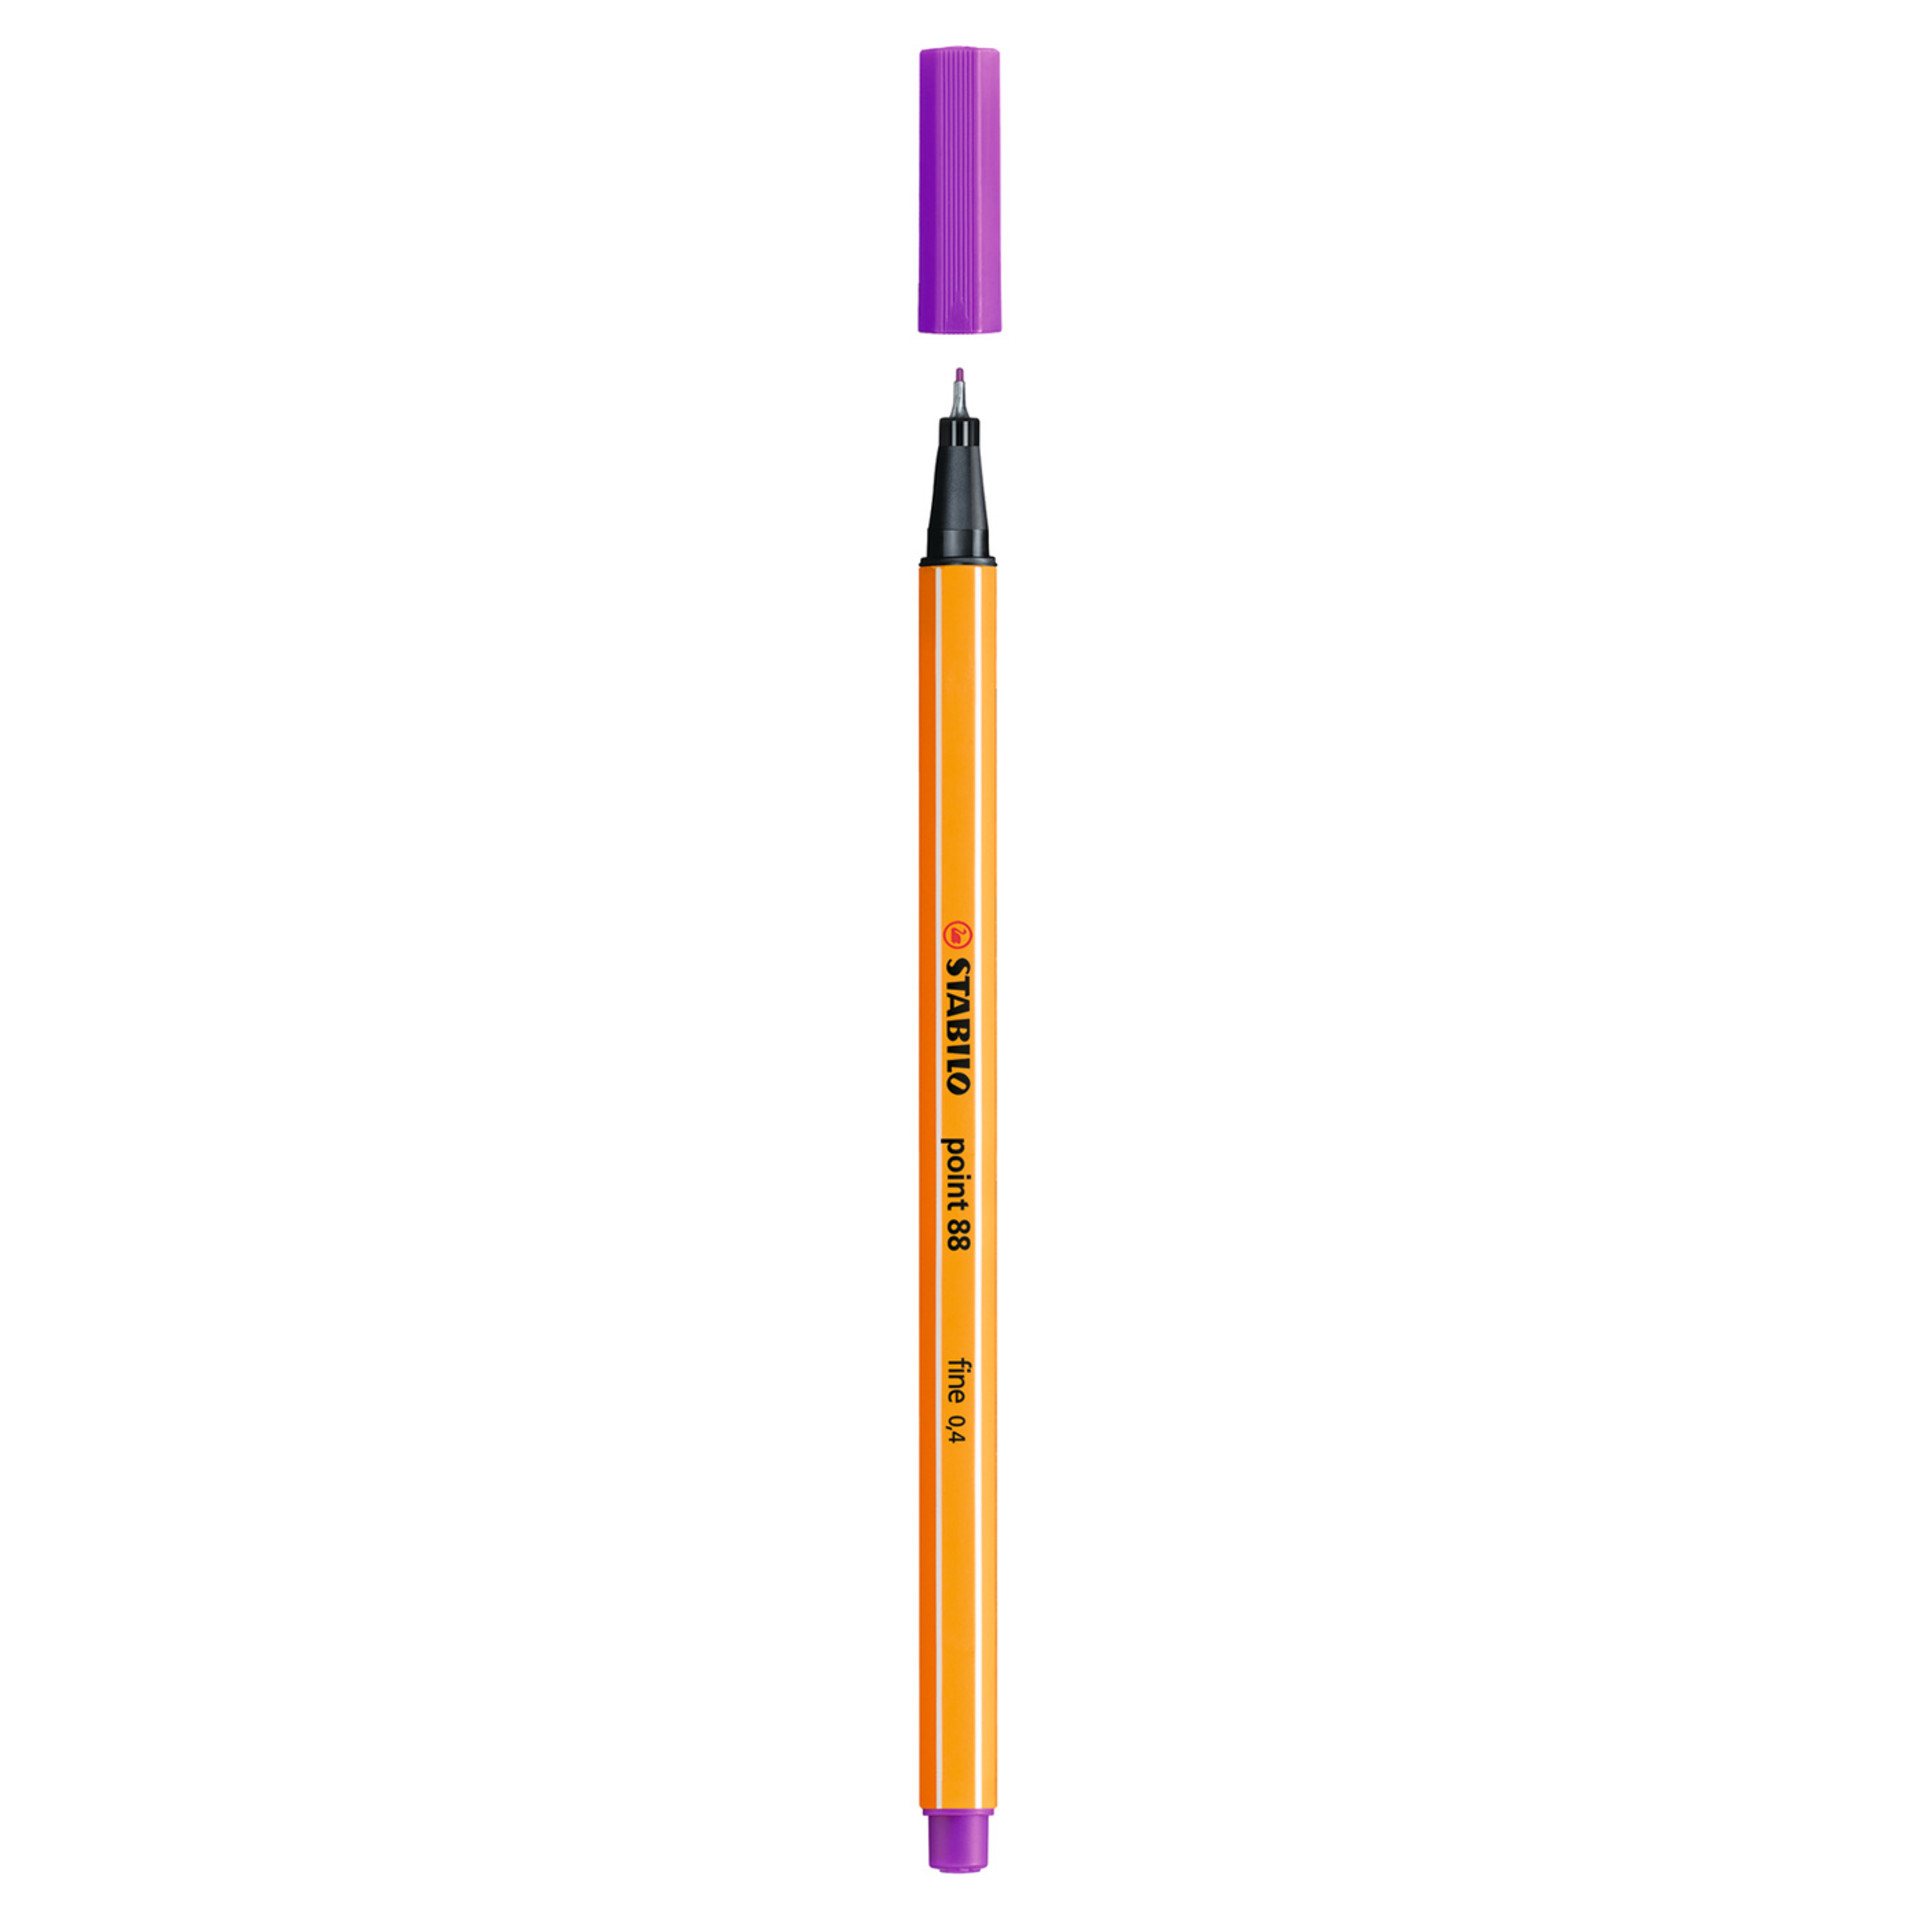 Stabilo Point 88 .4mm Fineliner Pen – Lilac